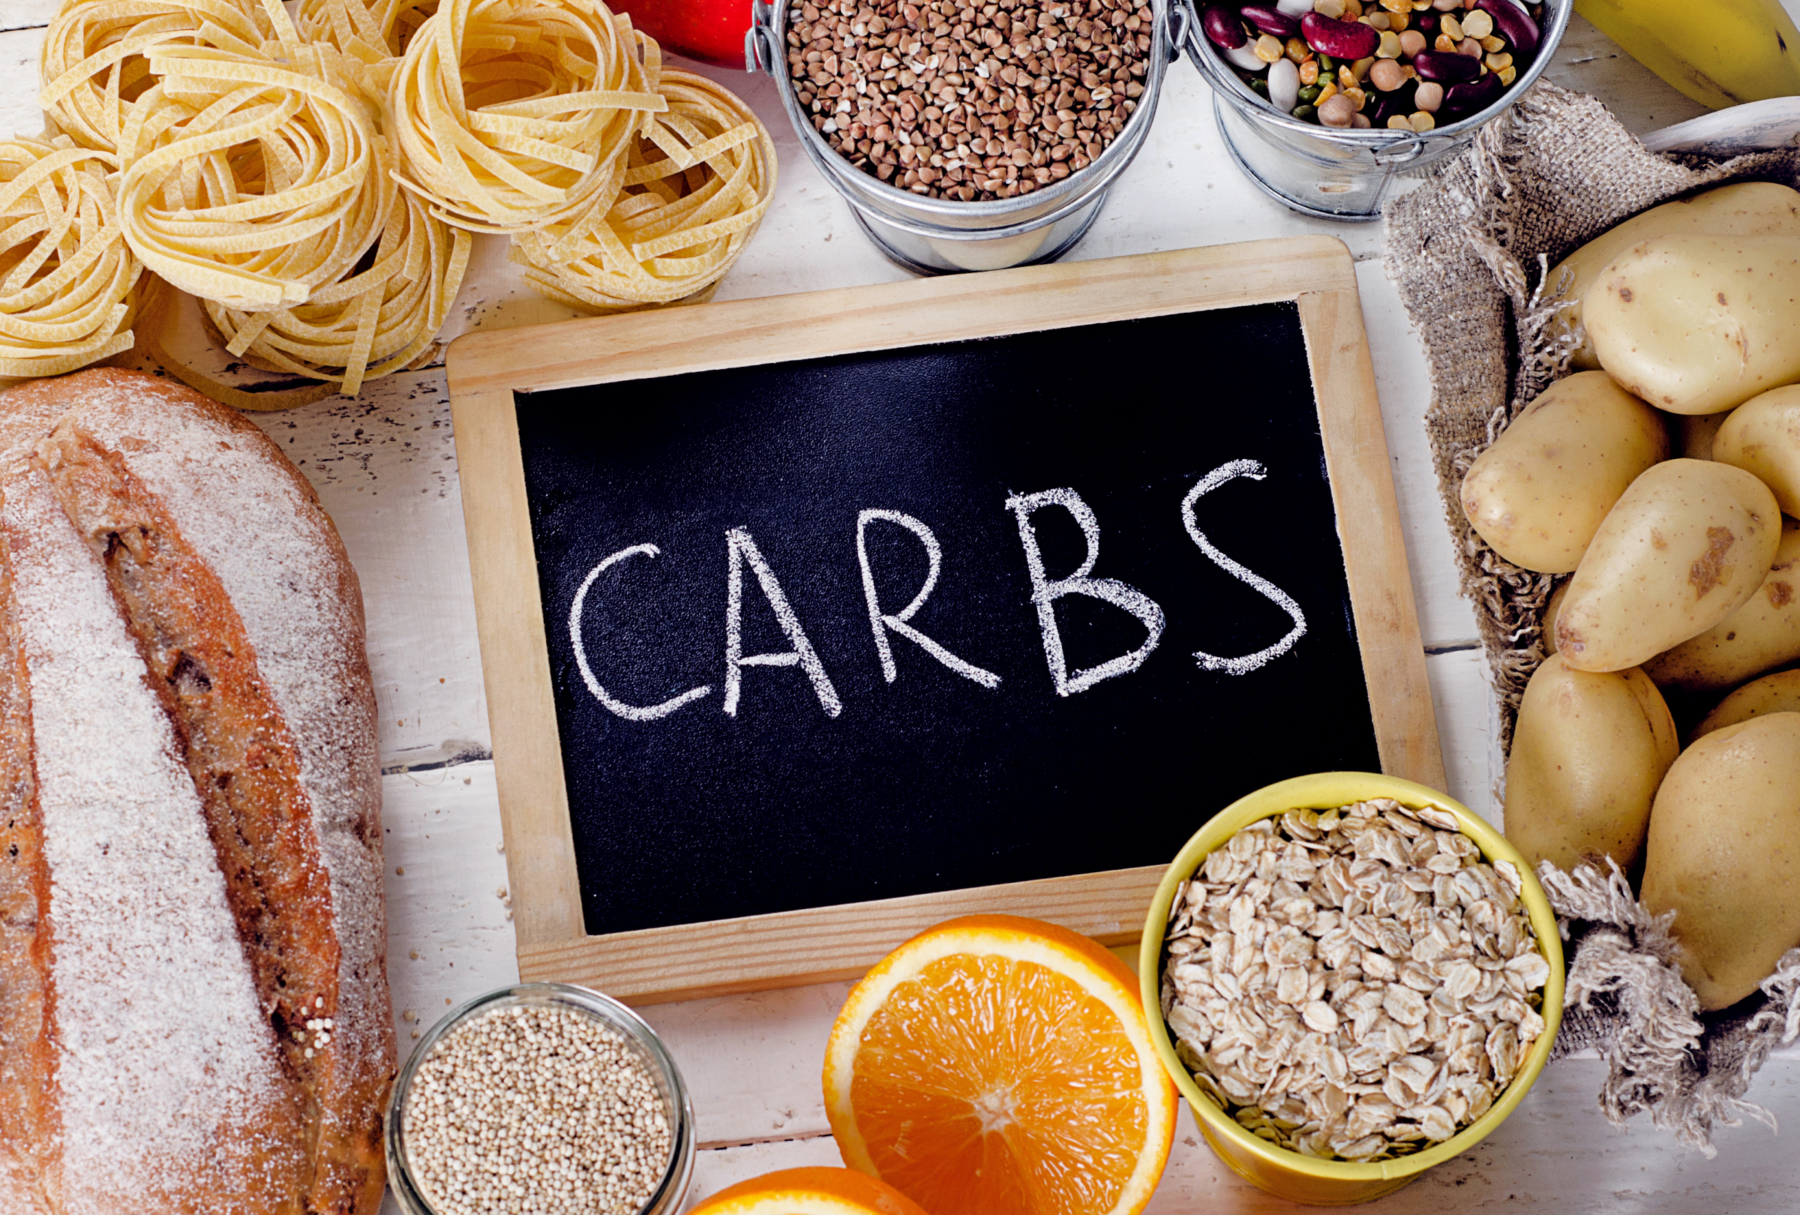 Carbs Carbohydrates Do we need to eat carbs | Eat Wheat